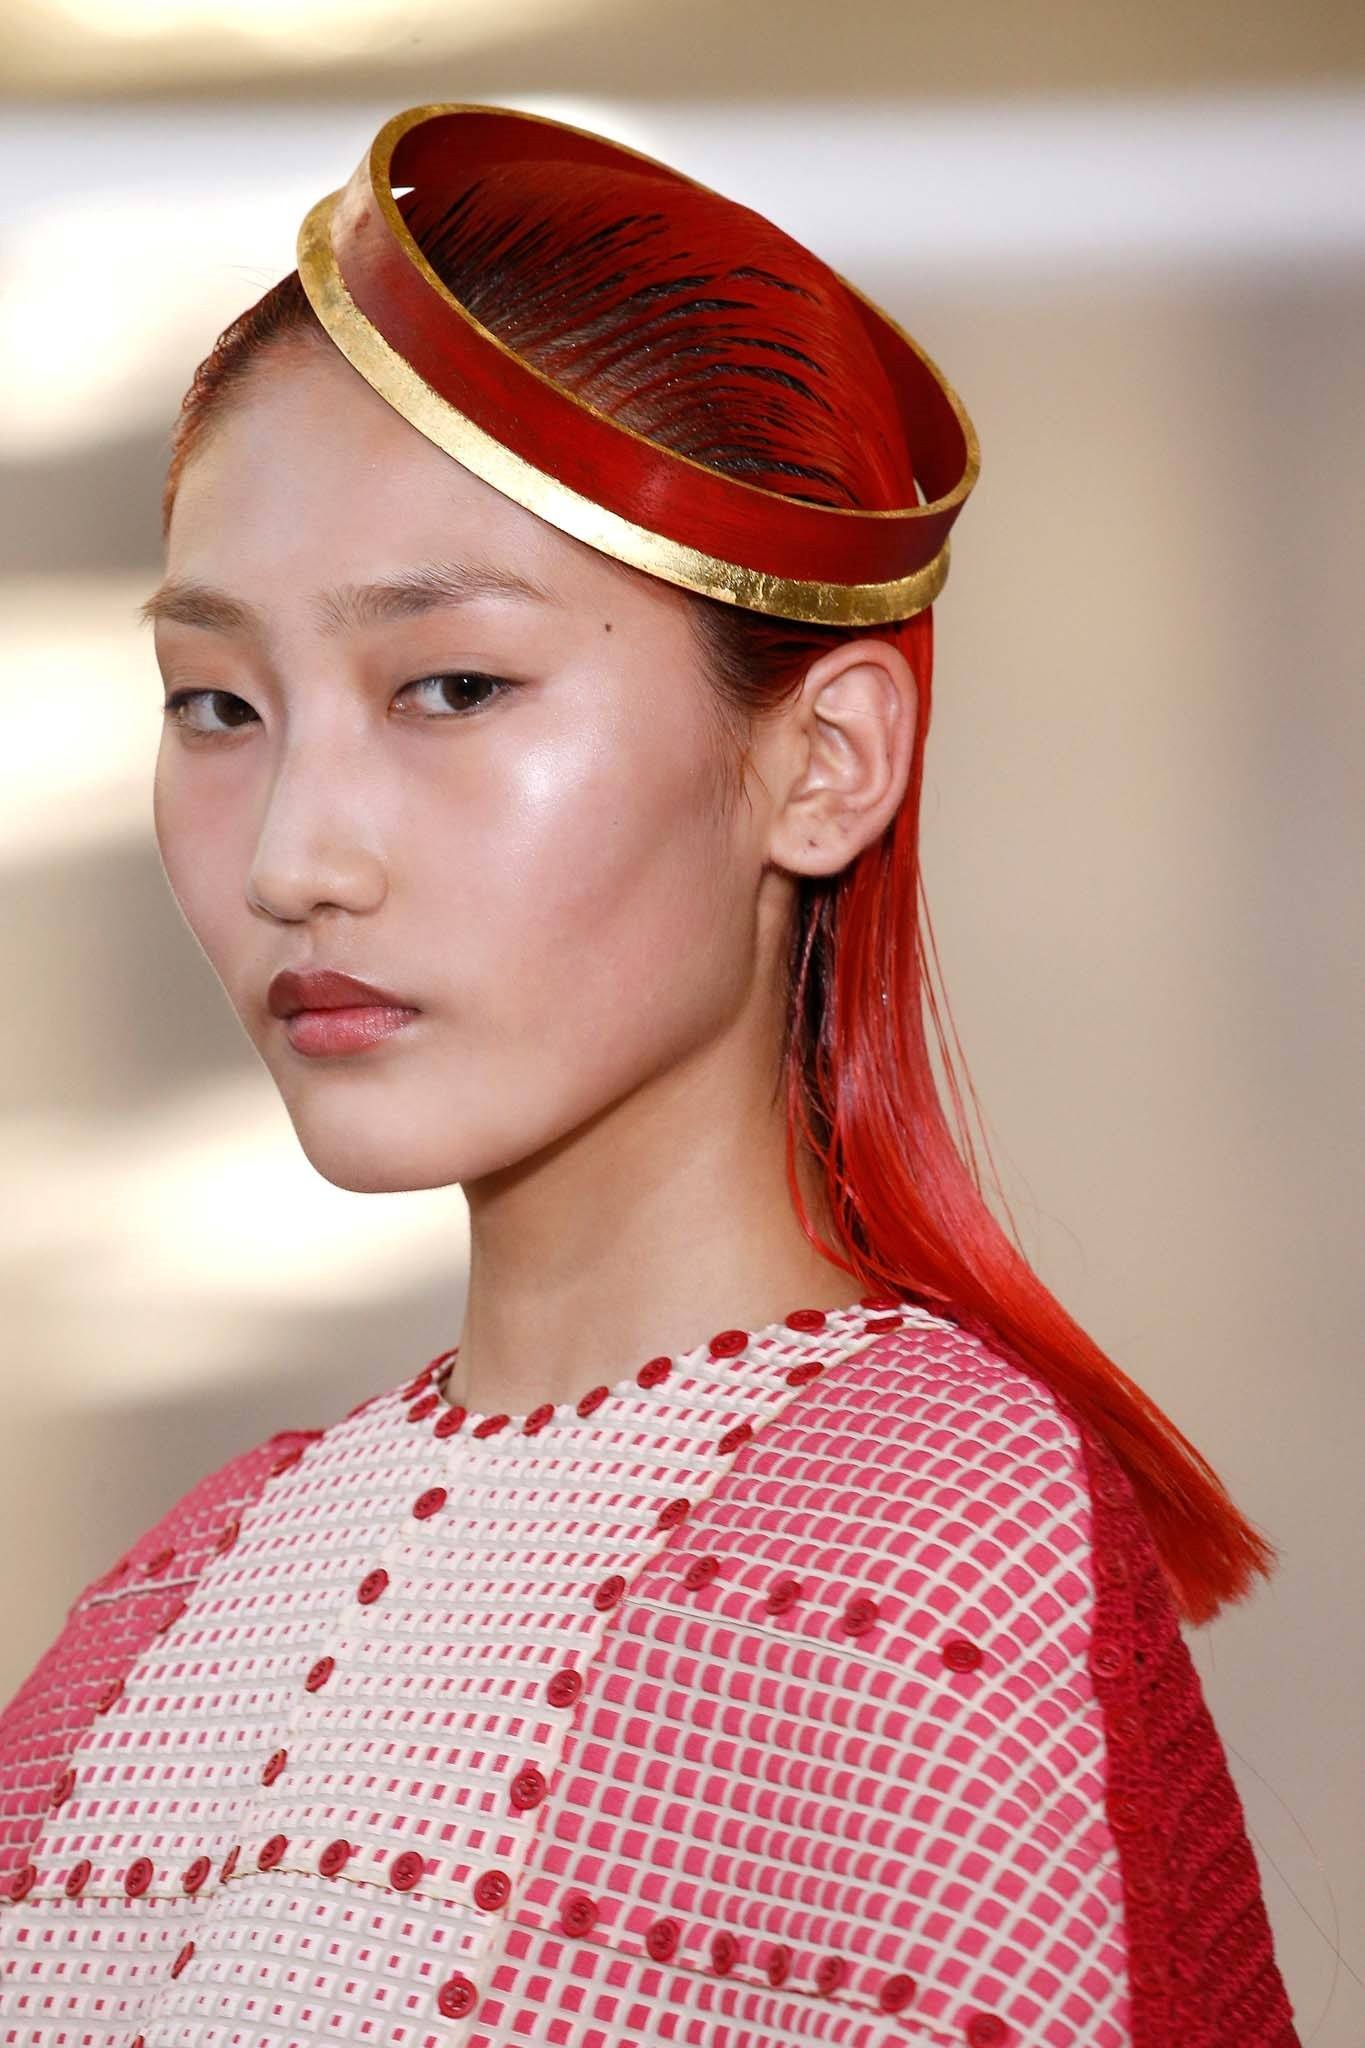 Asian model with red straight hair and a head gear